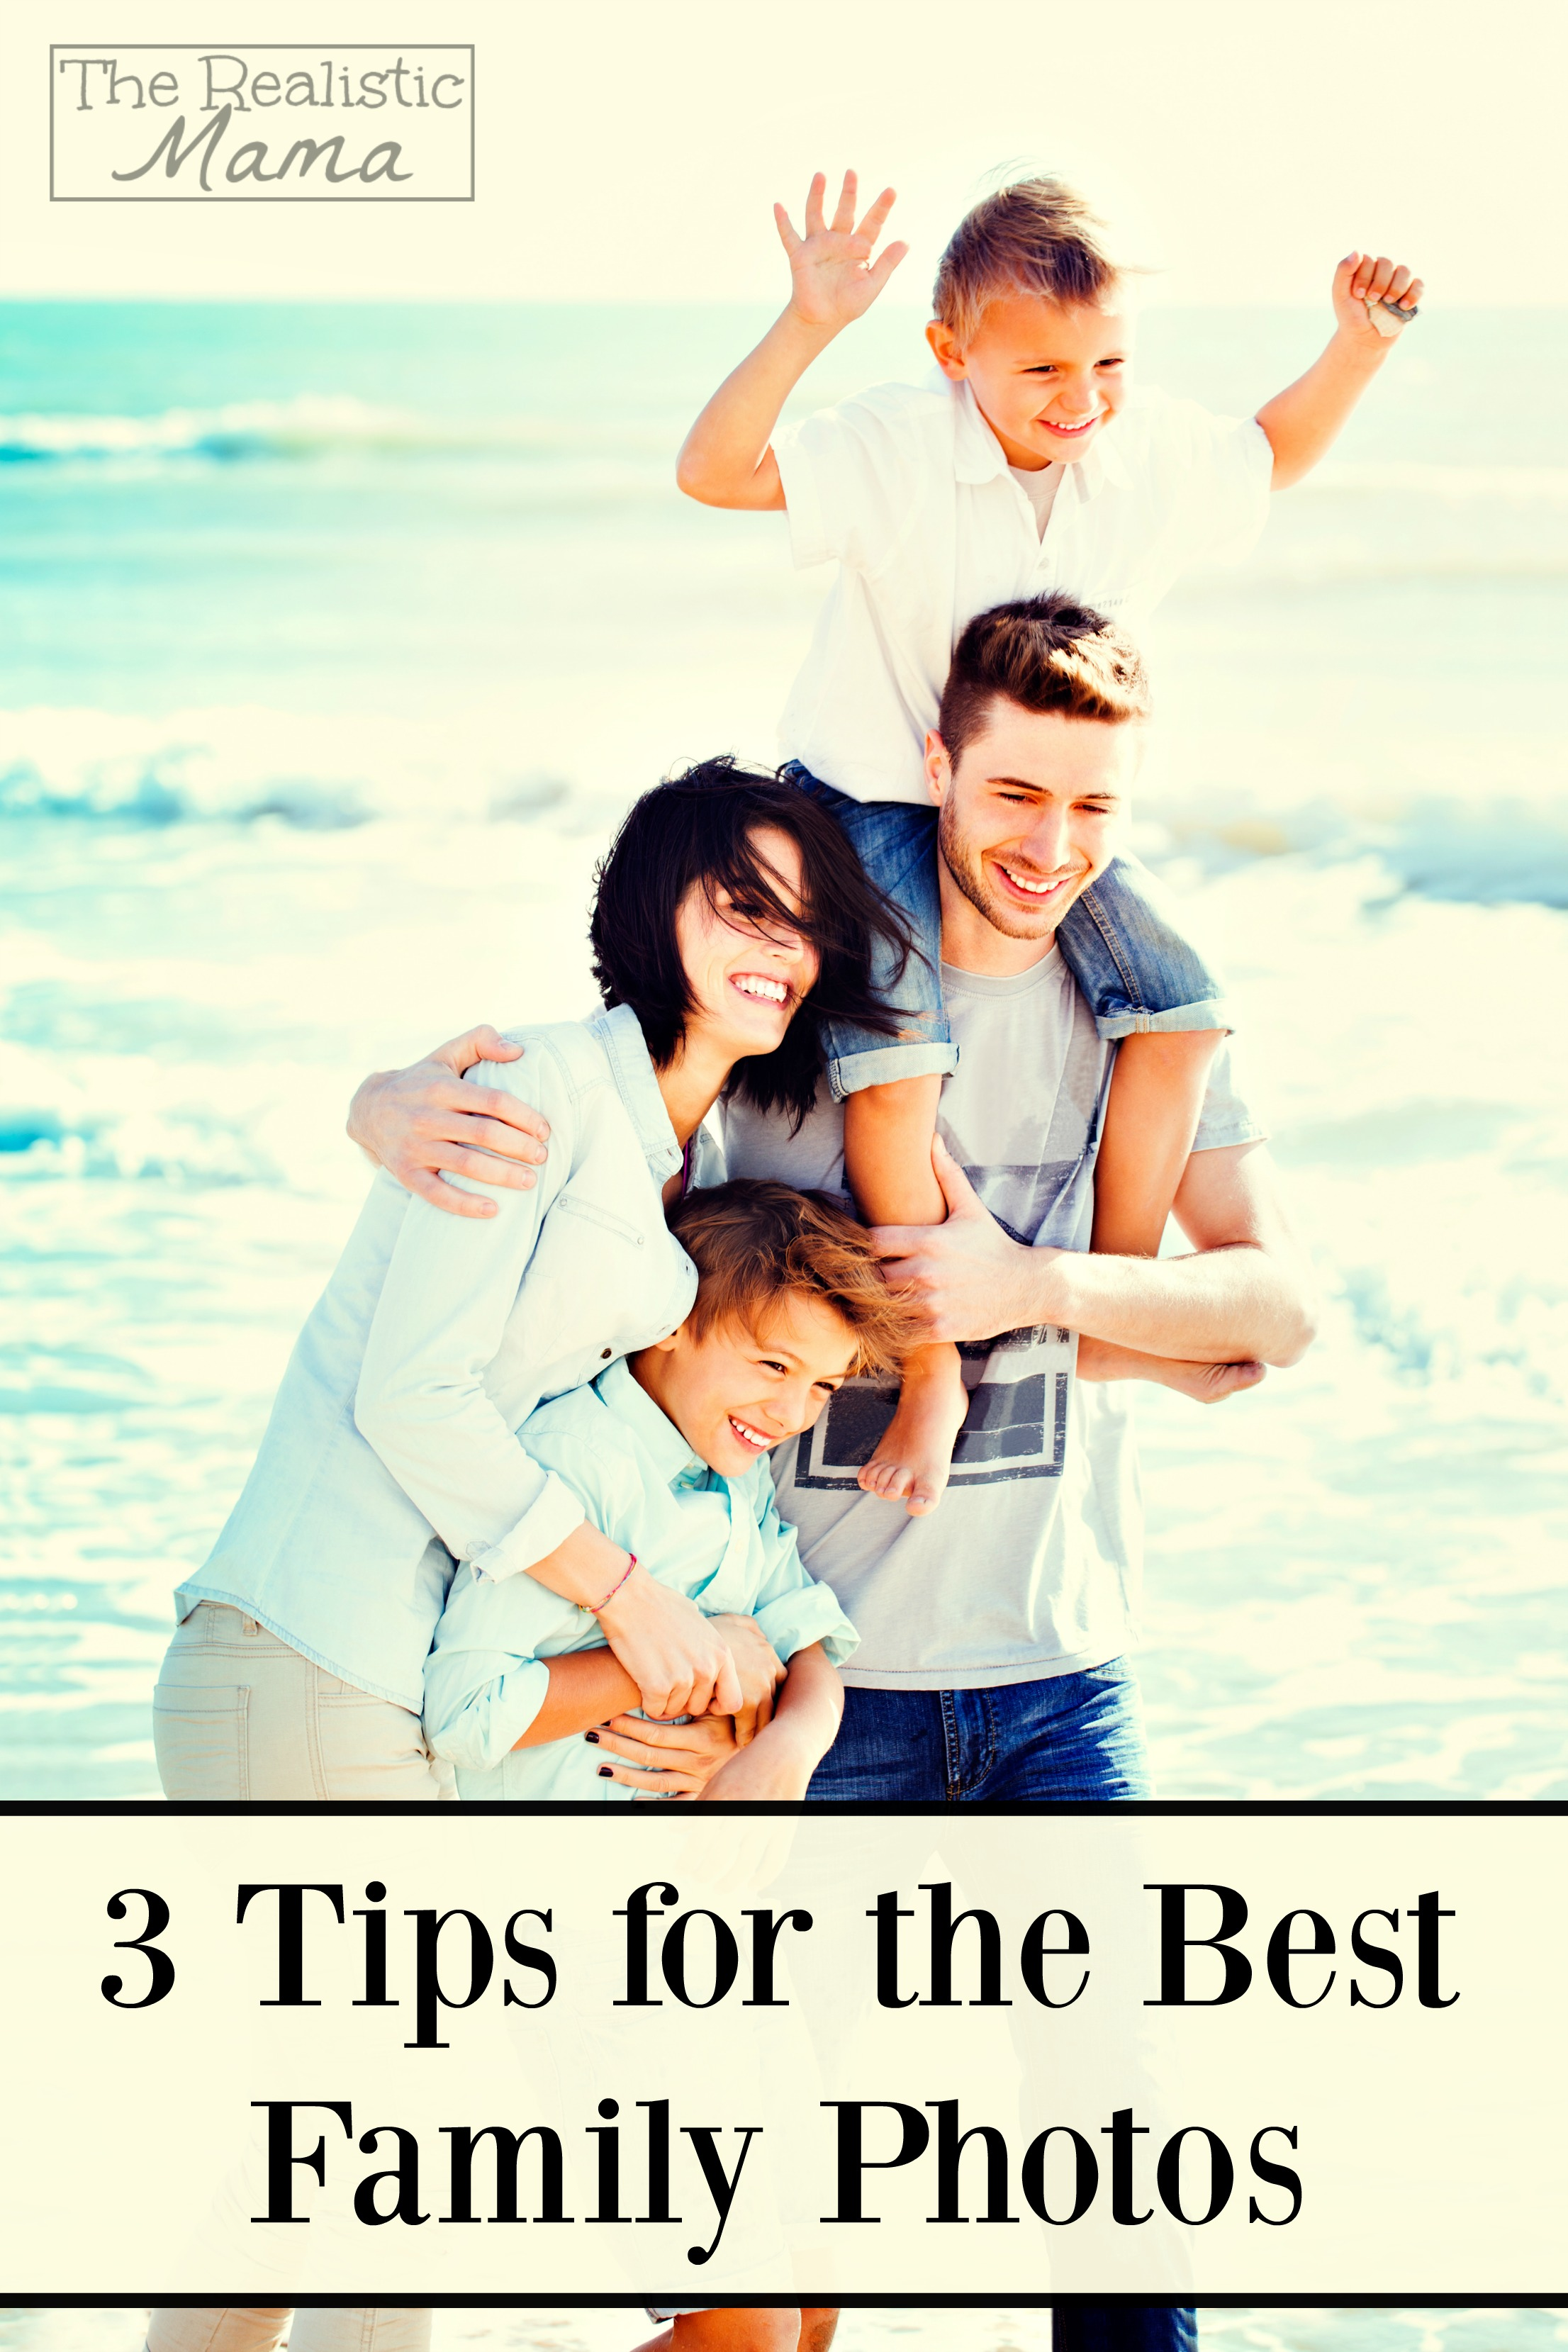 3 Tips for the Best Family Photos - I love #1